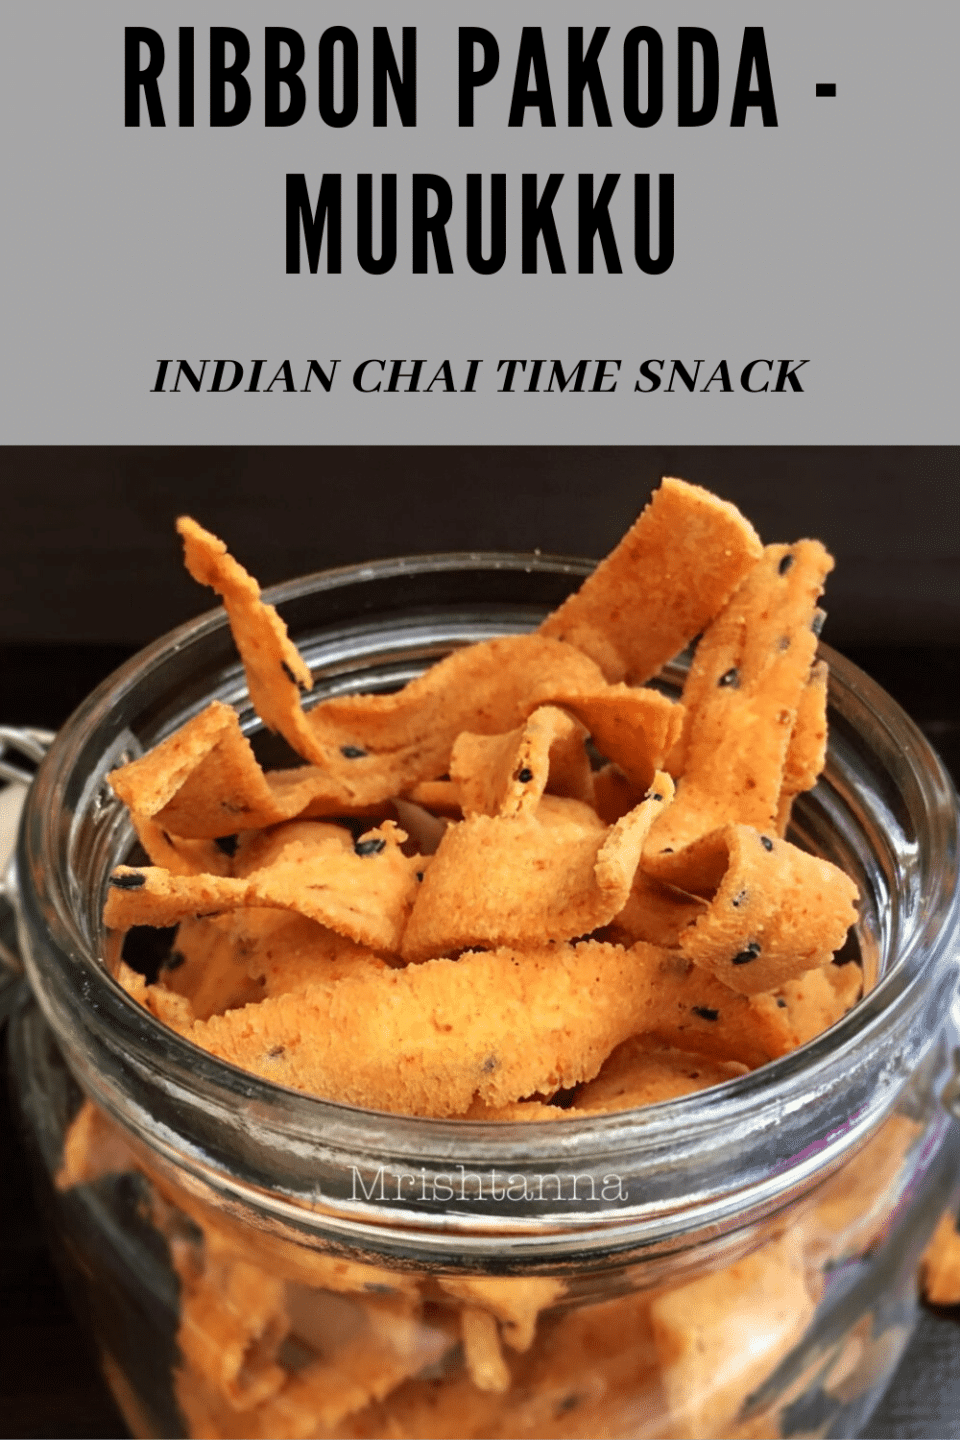 A close up of food on a table, with Gram flour and Murukku